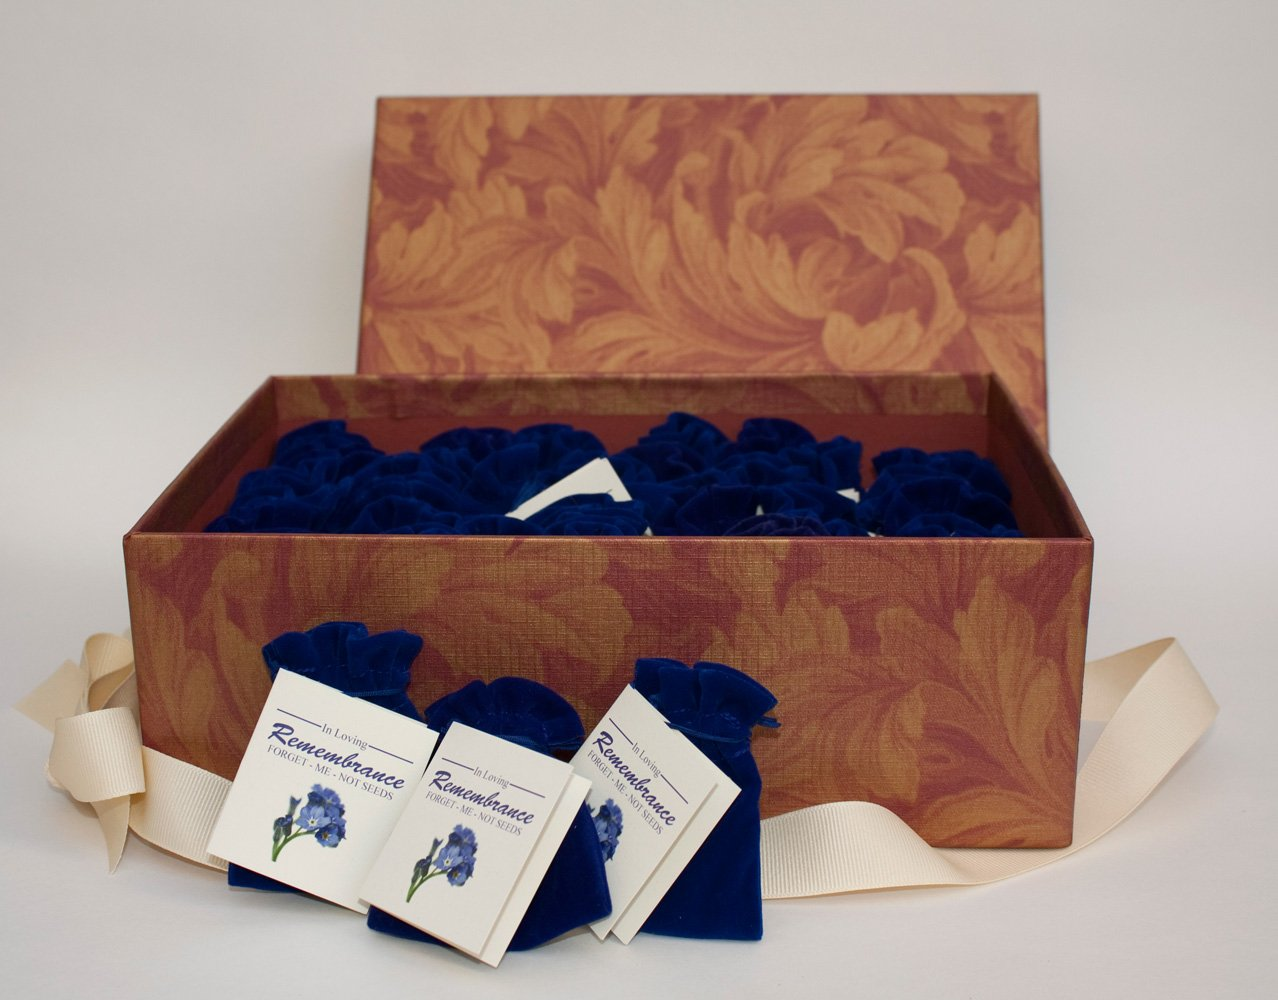 Forget-me-not seed Packets in Velvet Pouches - Funeral Favor or Funeral Gift - Personalized Plantable Celebration of Life (25) by Next Gen Memorials (Image #2)